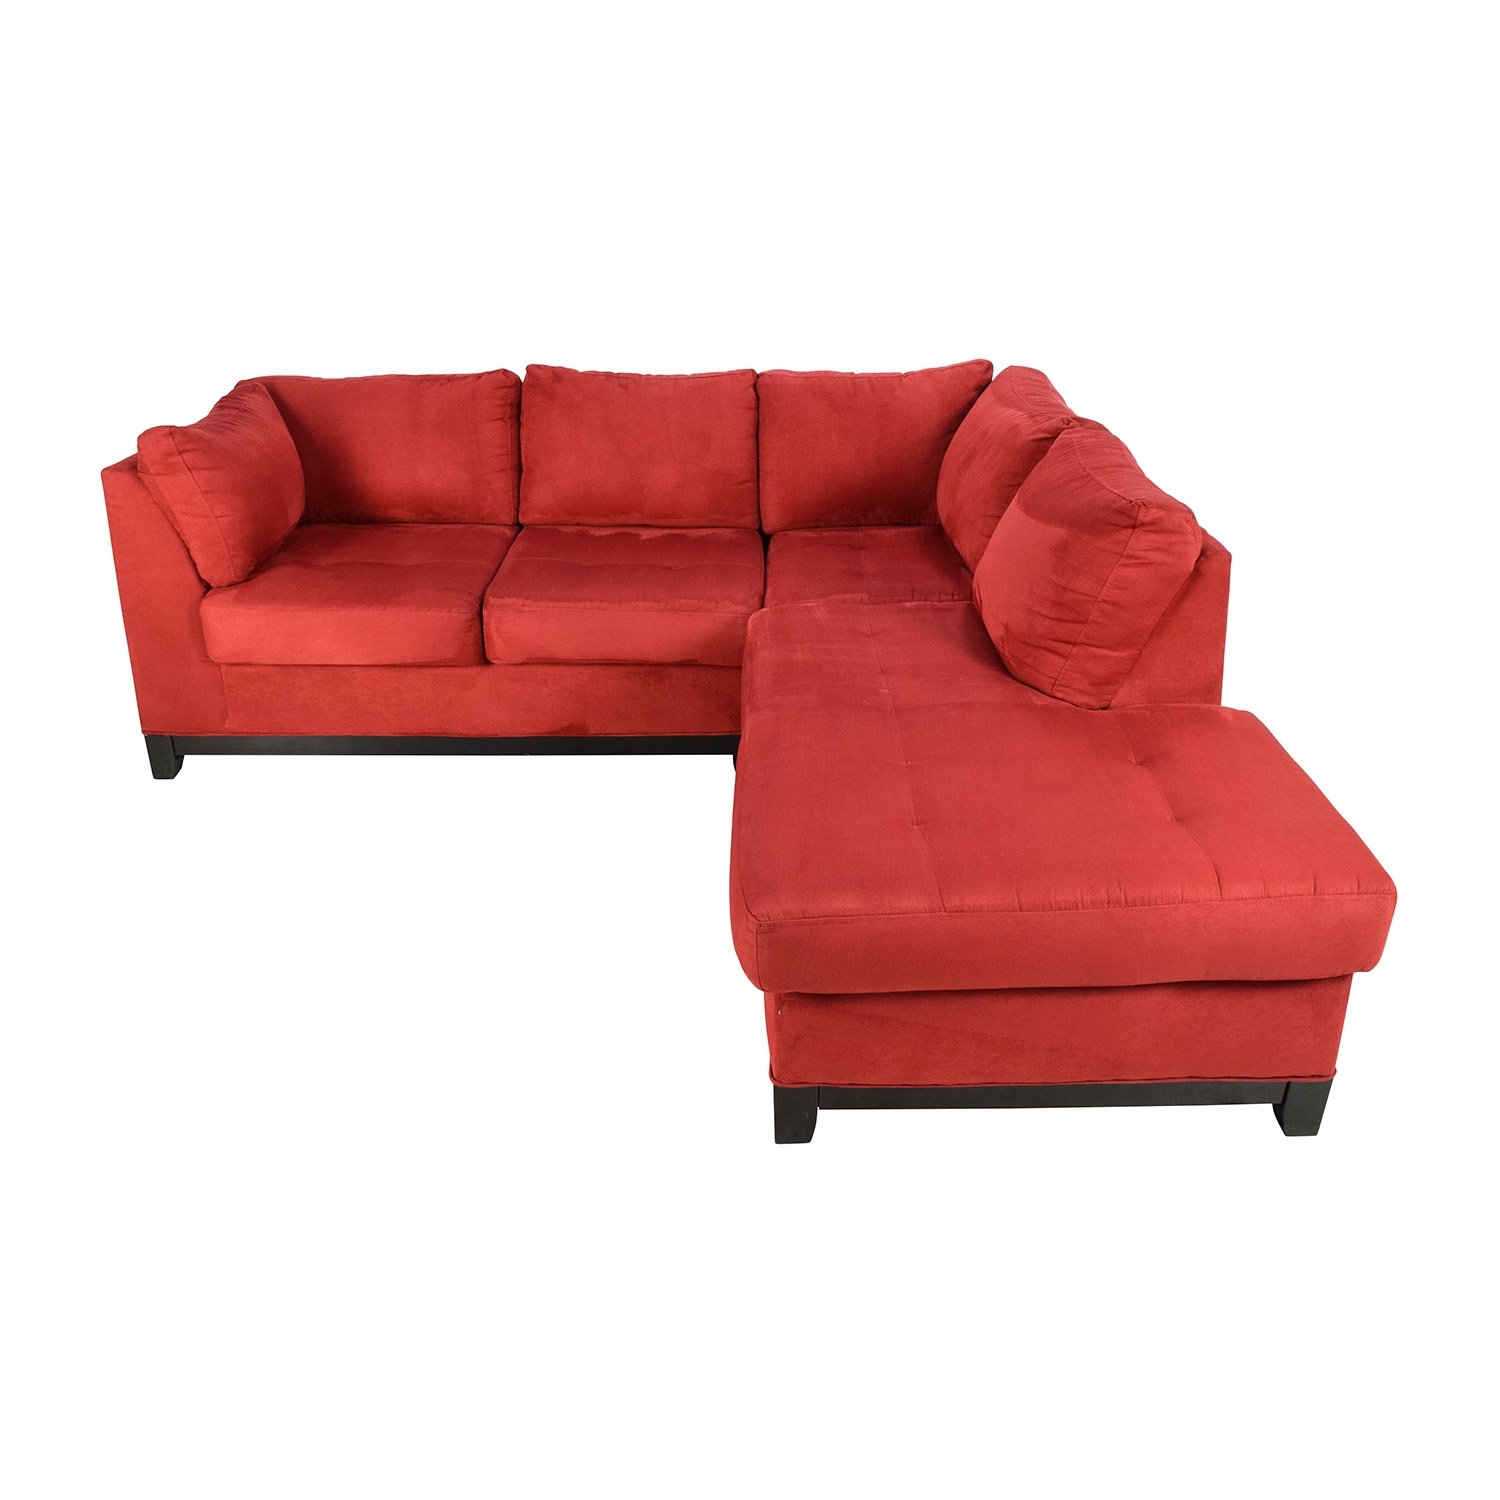 67% Off – Raymour And Flanigan Raymour & Flanigan Zella Red In Sectional Sofas At Raymour And Flanigan (View 2 of 15)